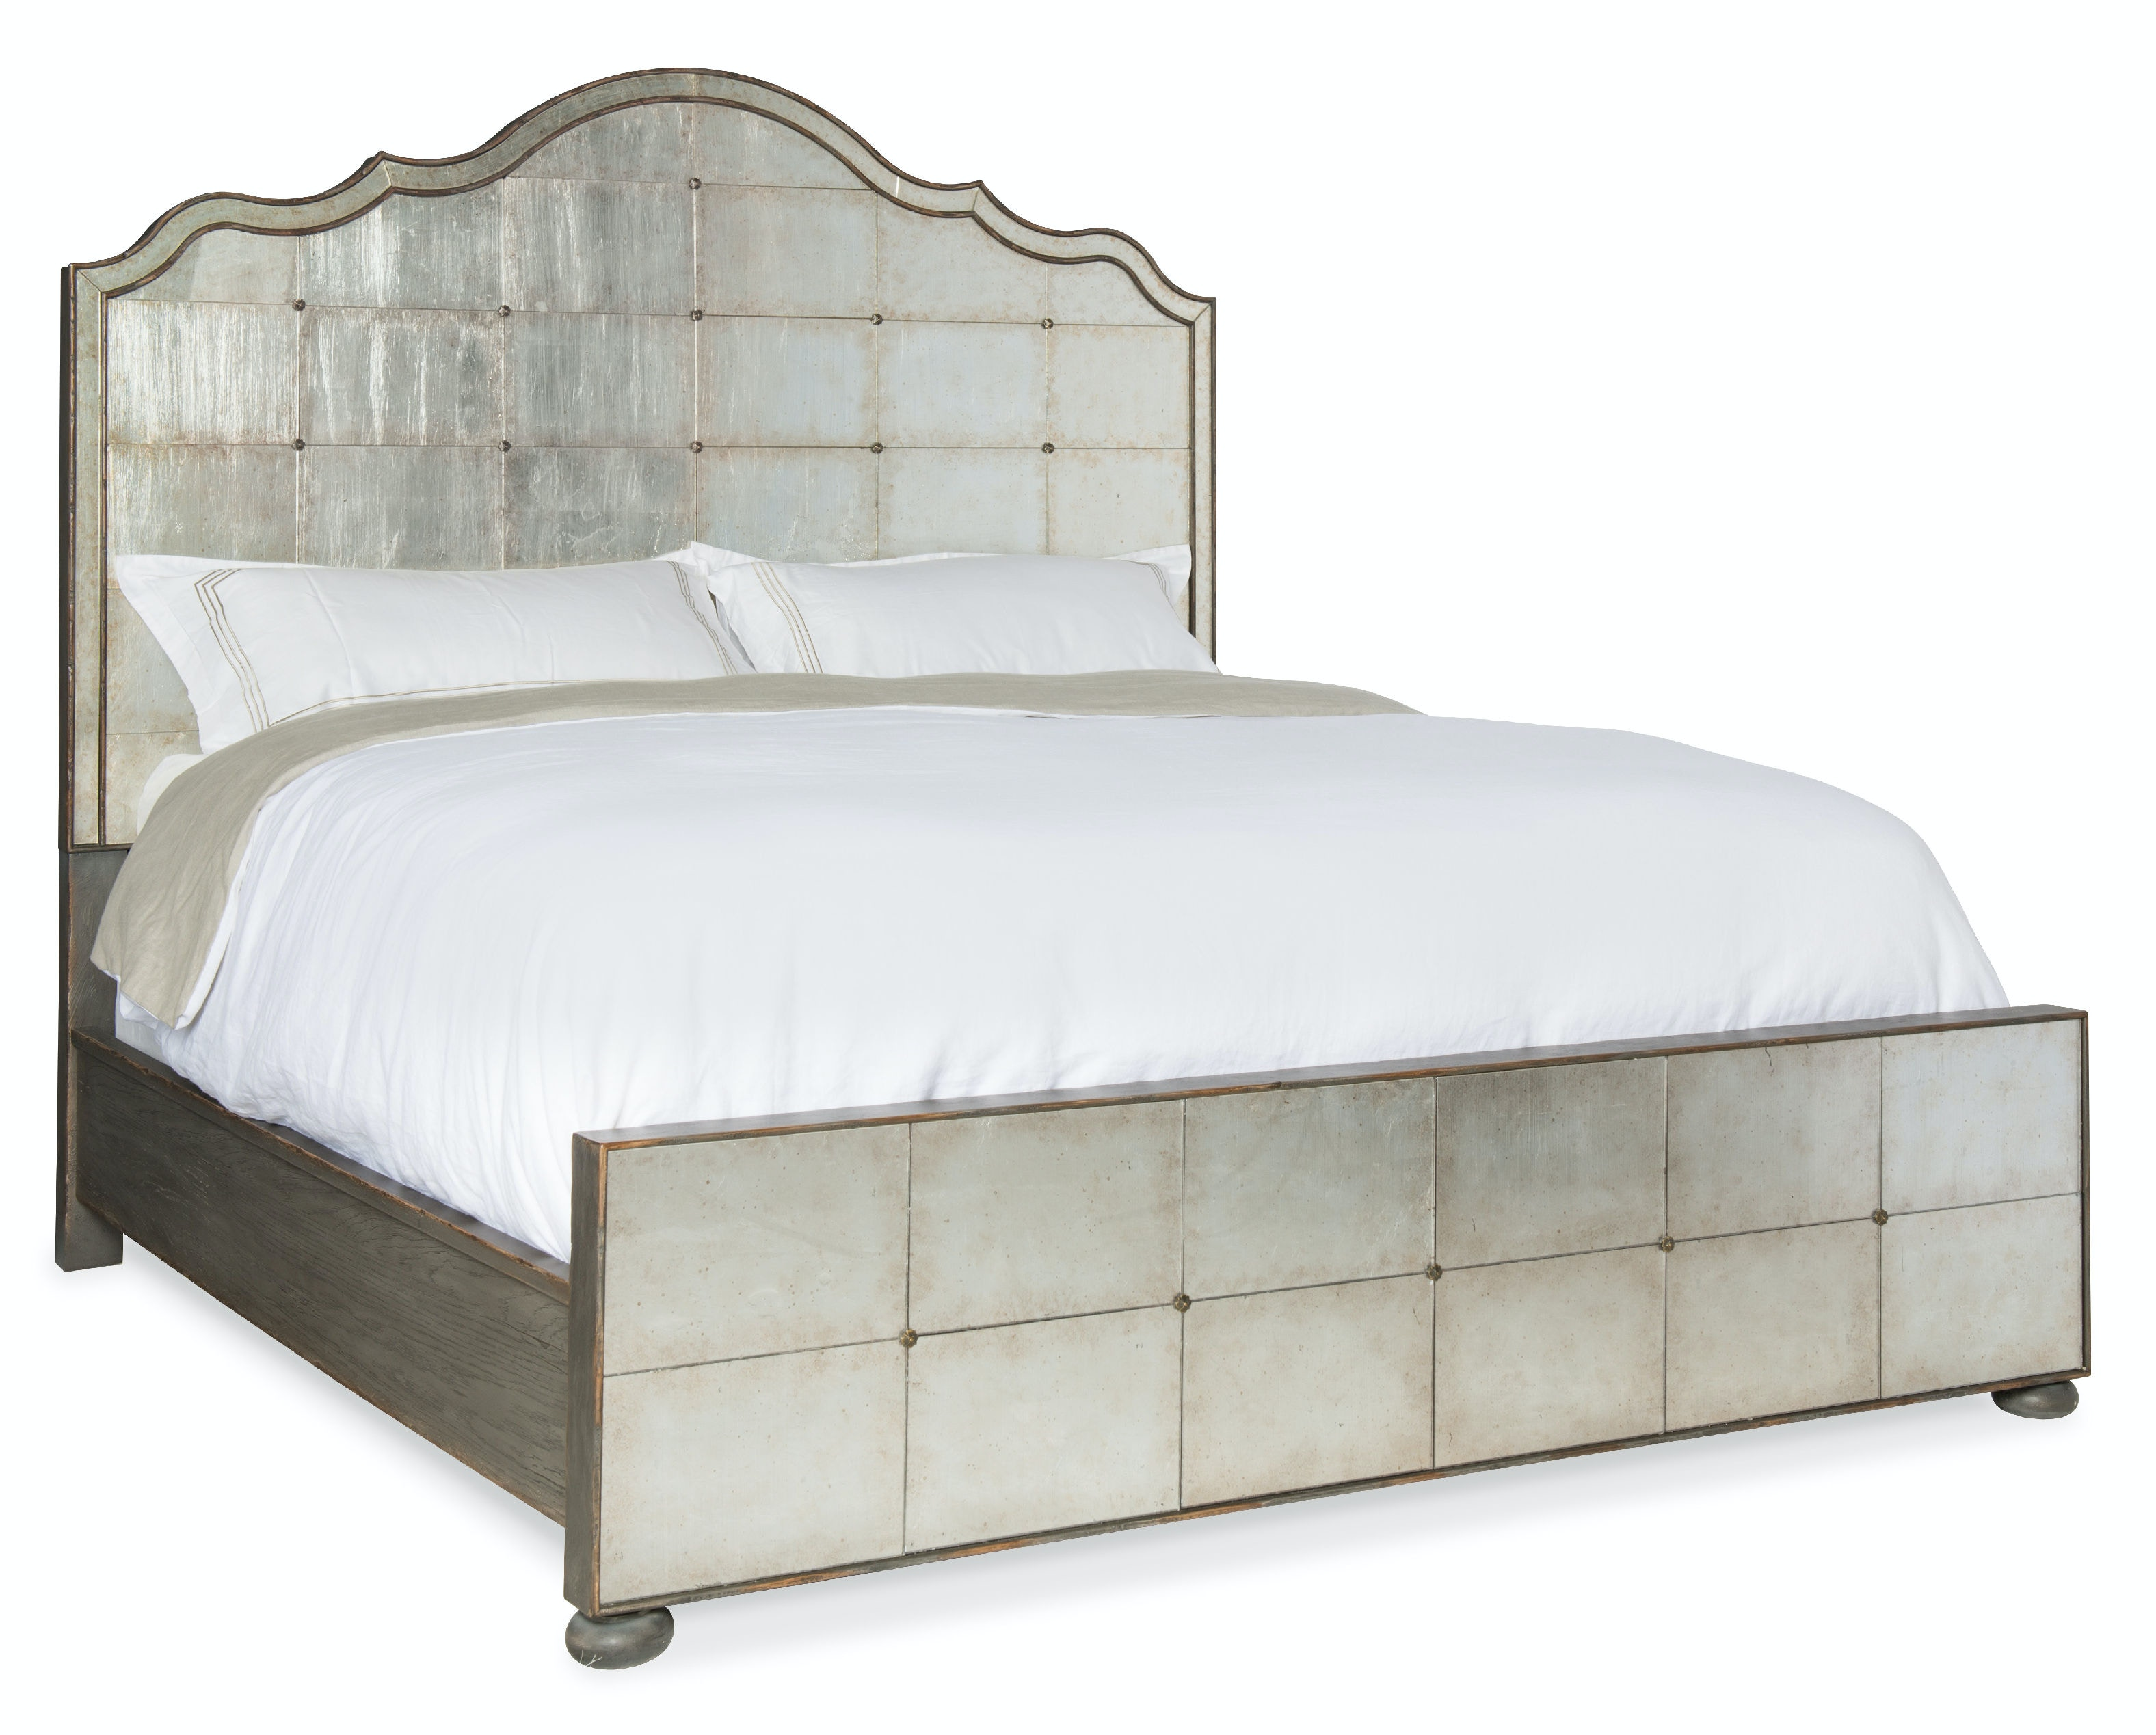 Arabella King Mirrored Panel Bed 1610-90166-EGLO